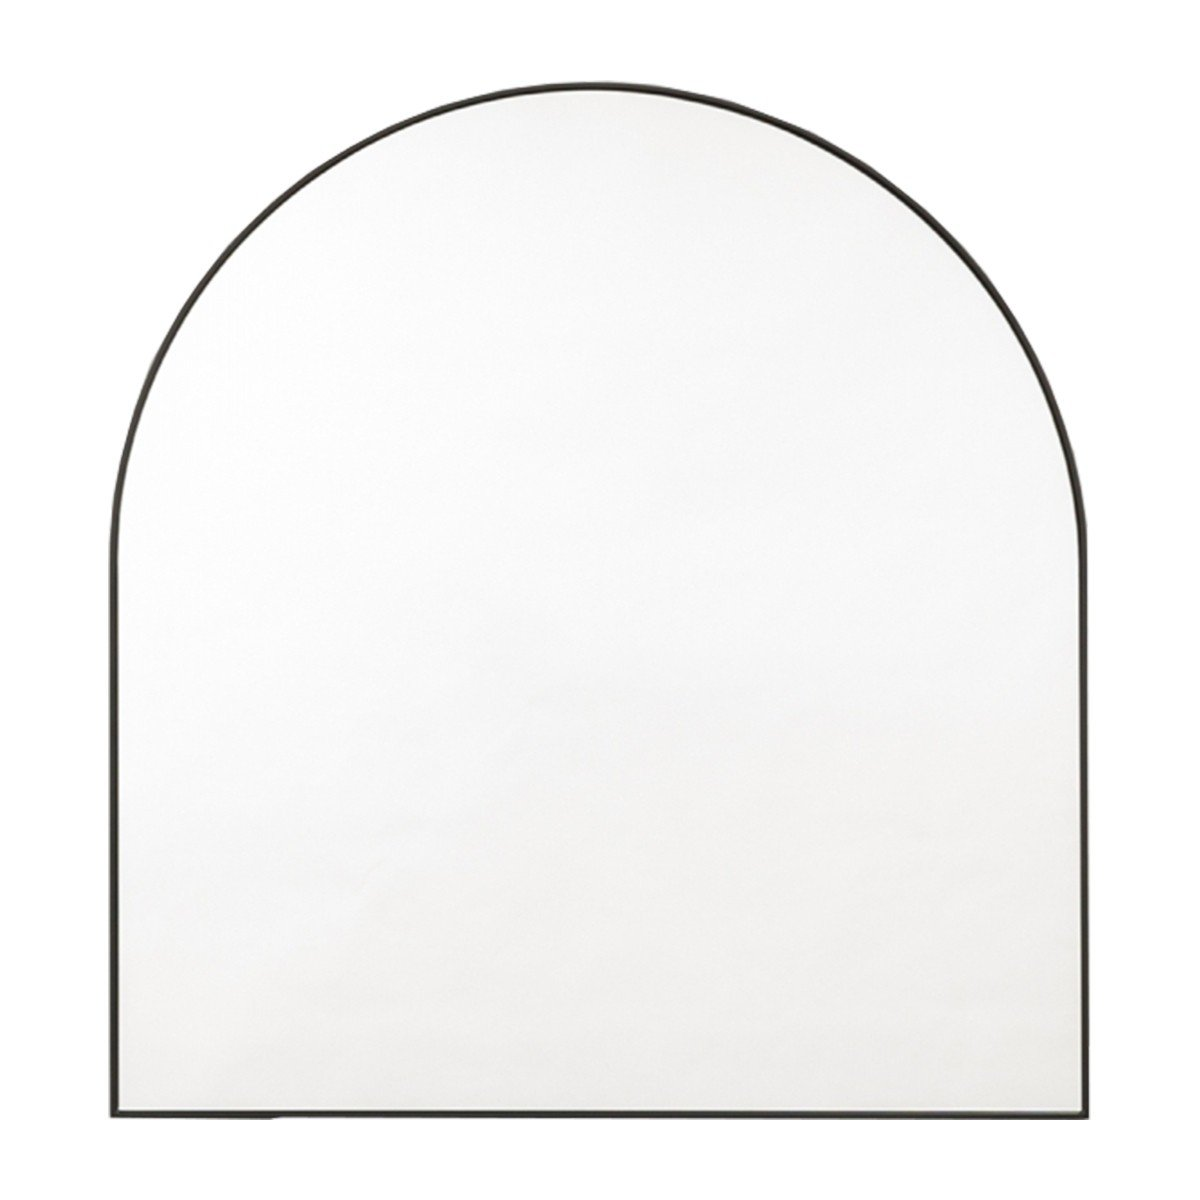 Arch Slim Black Mirror by Just in Place, a Mirrors for sale on Style Sourcebook